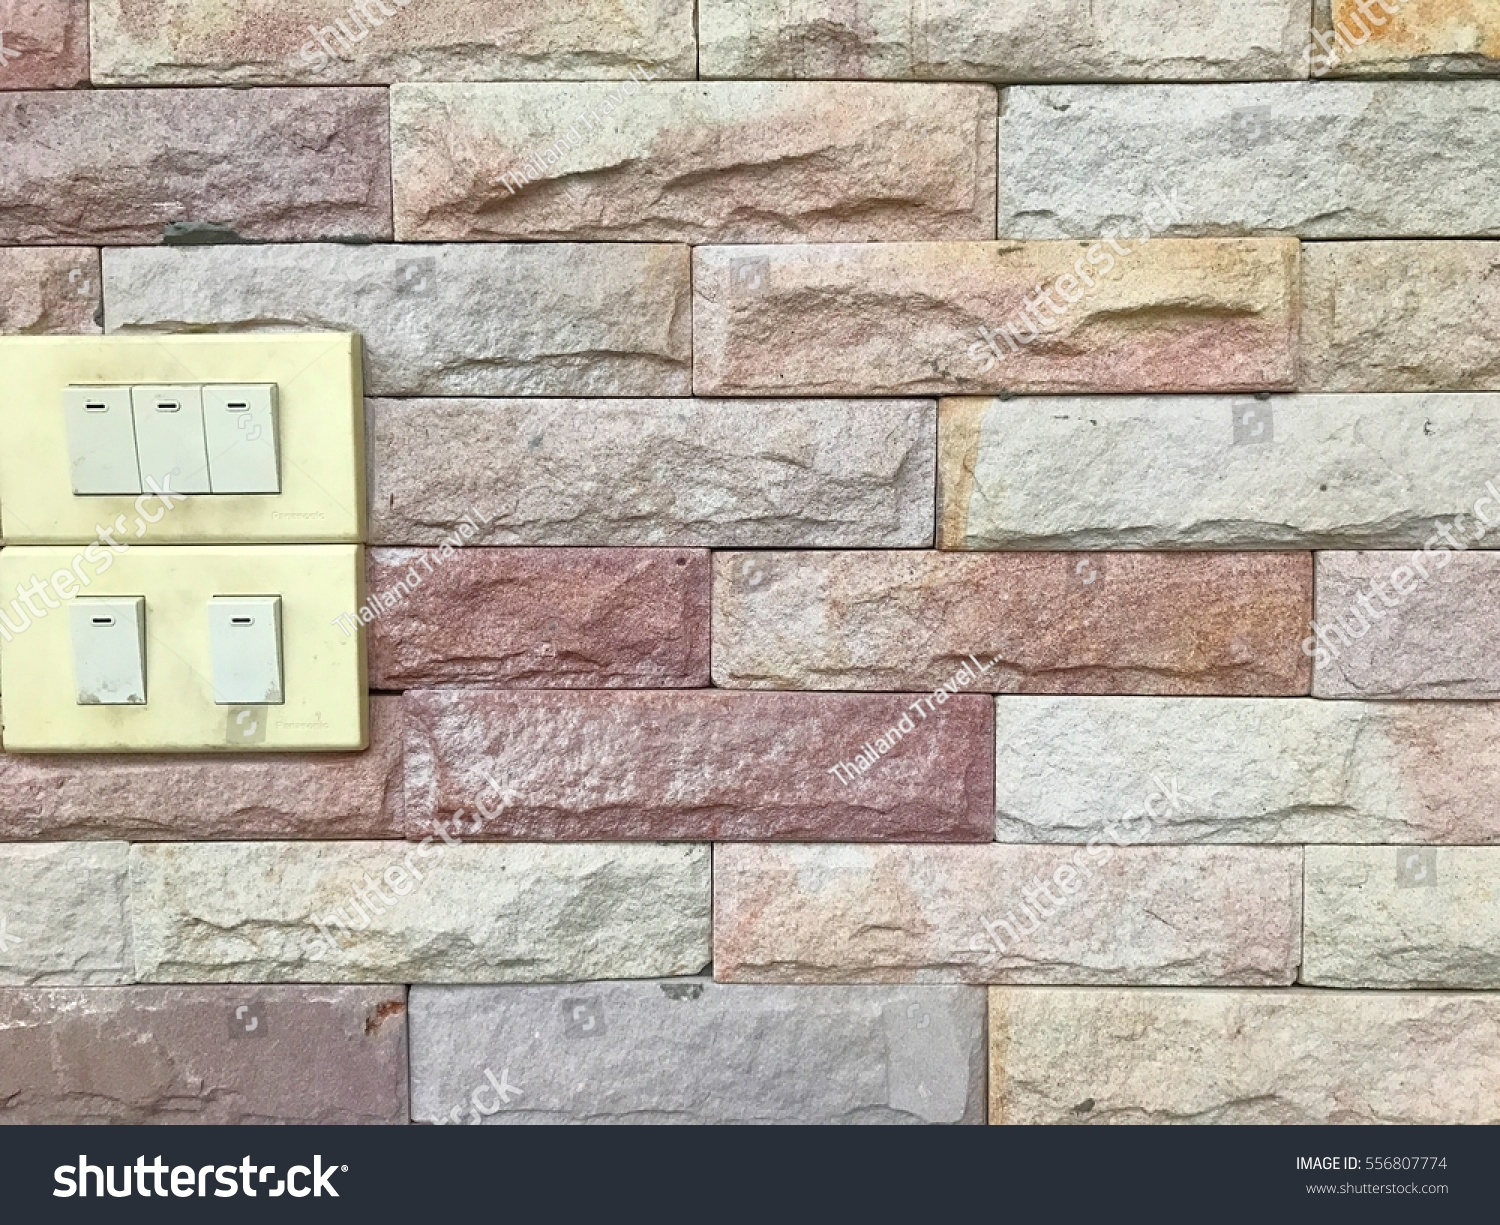 Old Light Switch Put On Wall Stock Photo (Edit Now) 556807774 ...